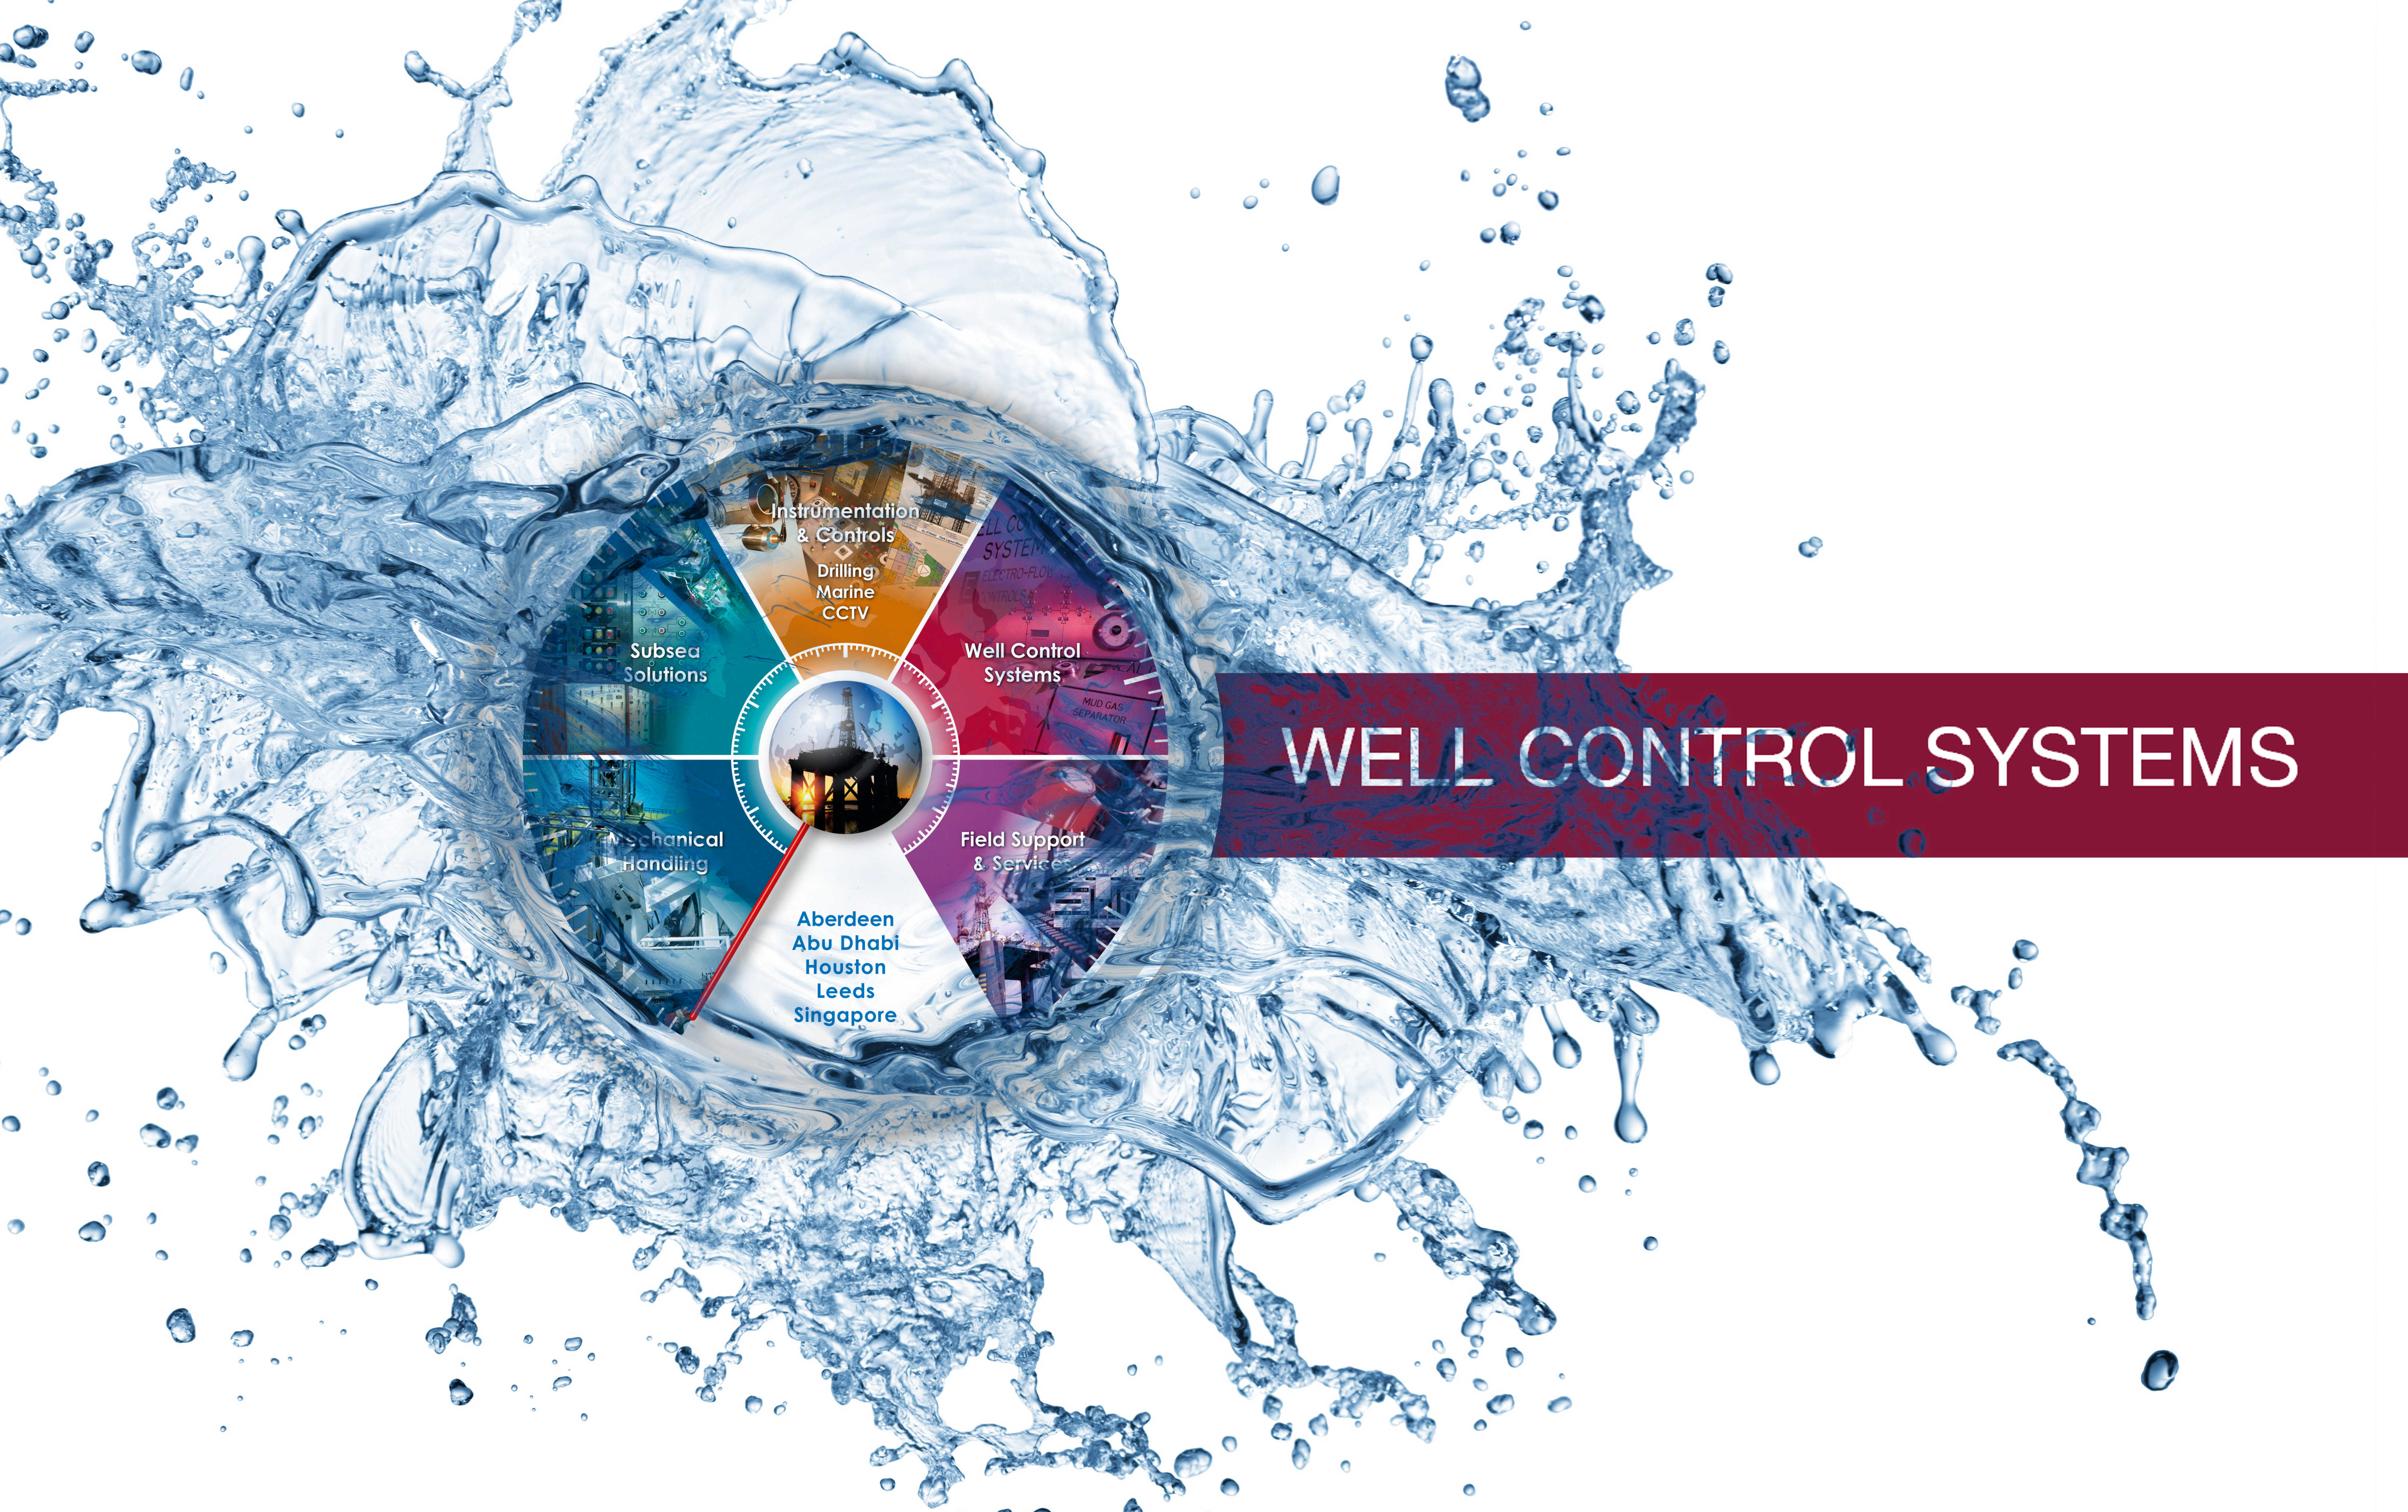 Well Control Systems